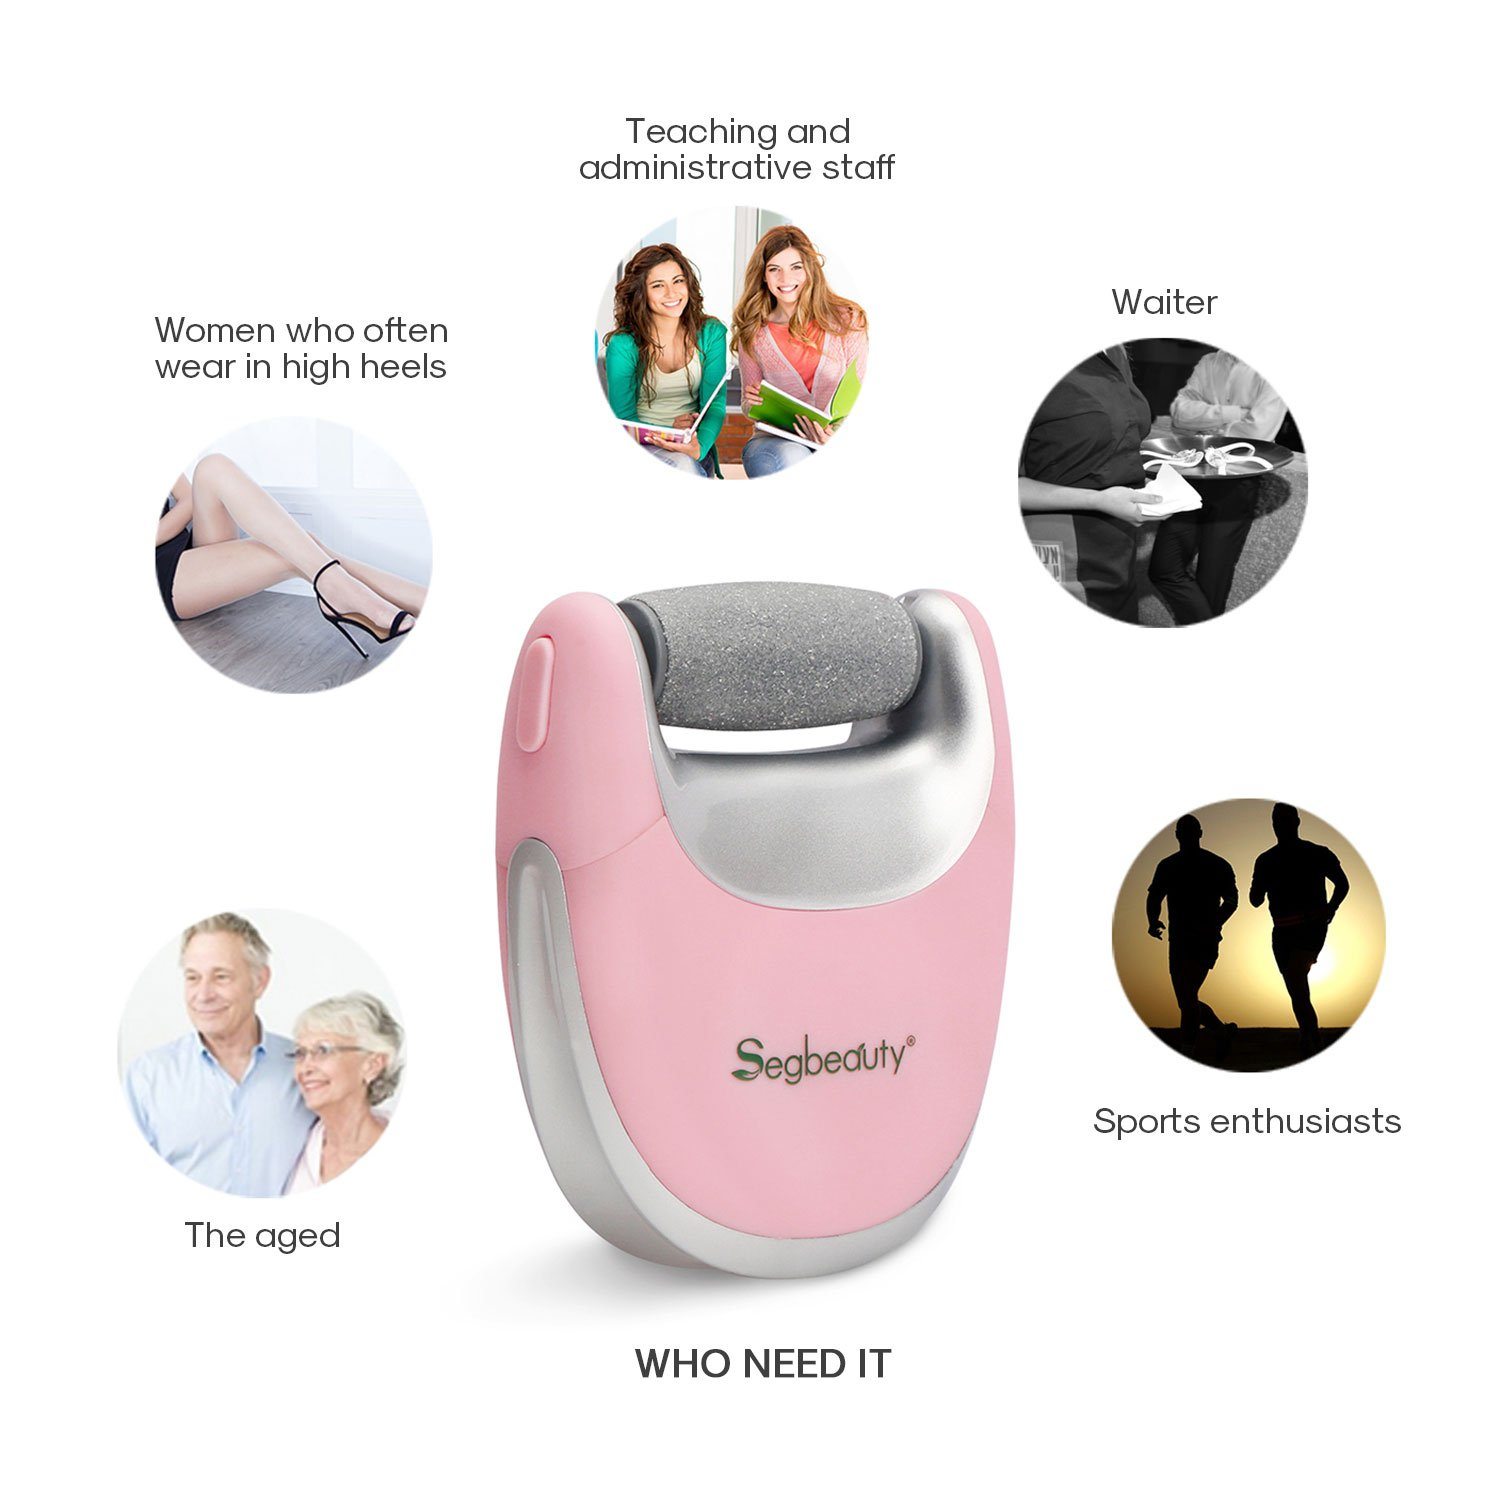 Segbeauty Elecric Callus Remover, Portable USB Rechargeable Pedicure Callus Instant Clear Remover, Travel Friendly, 2 Speeds Foot Care Callus Eliminator Foot File for Cracked Hard Dehisced Heels Skin by Segbeauty (Image #7)